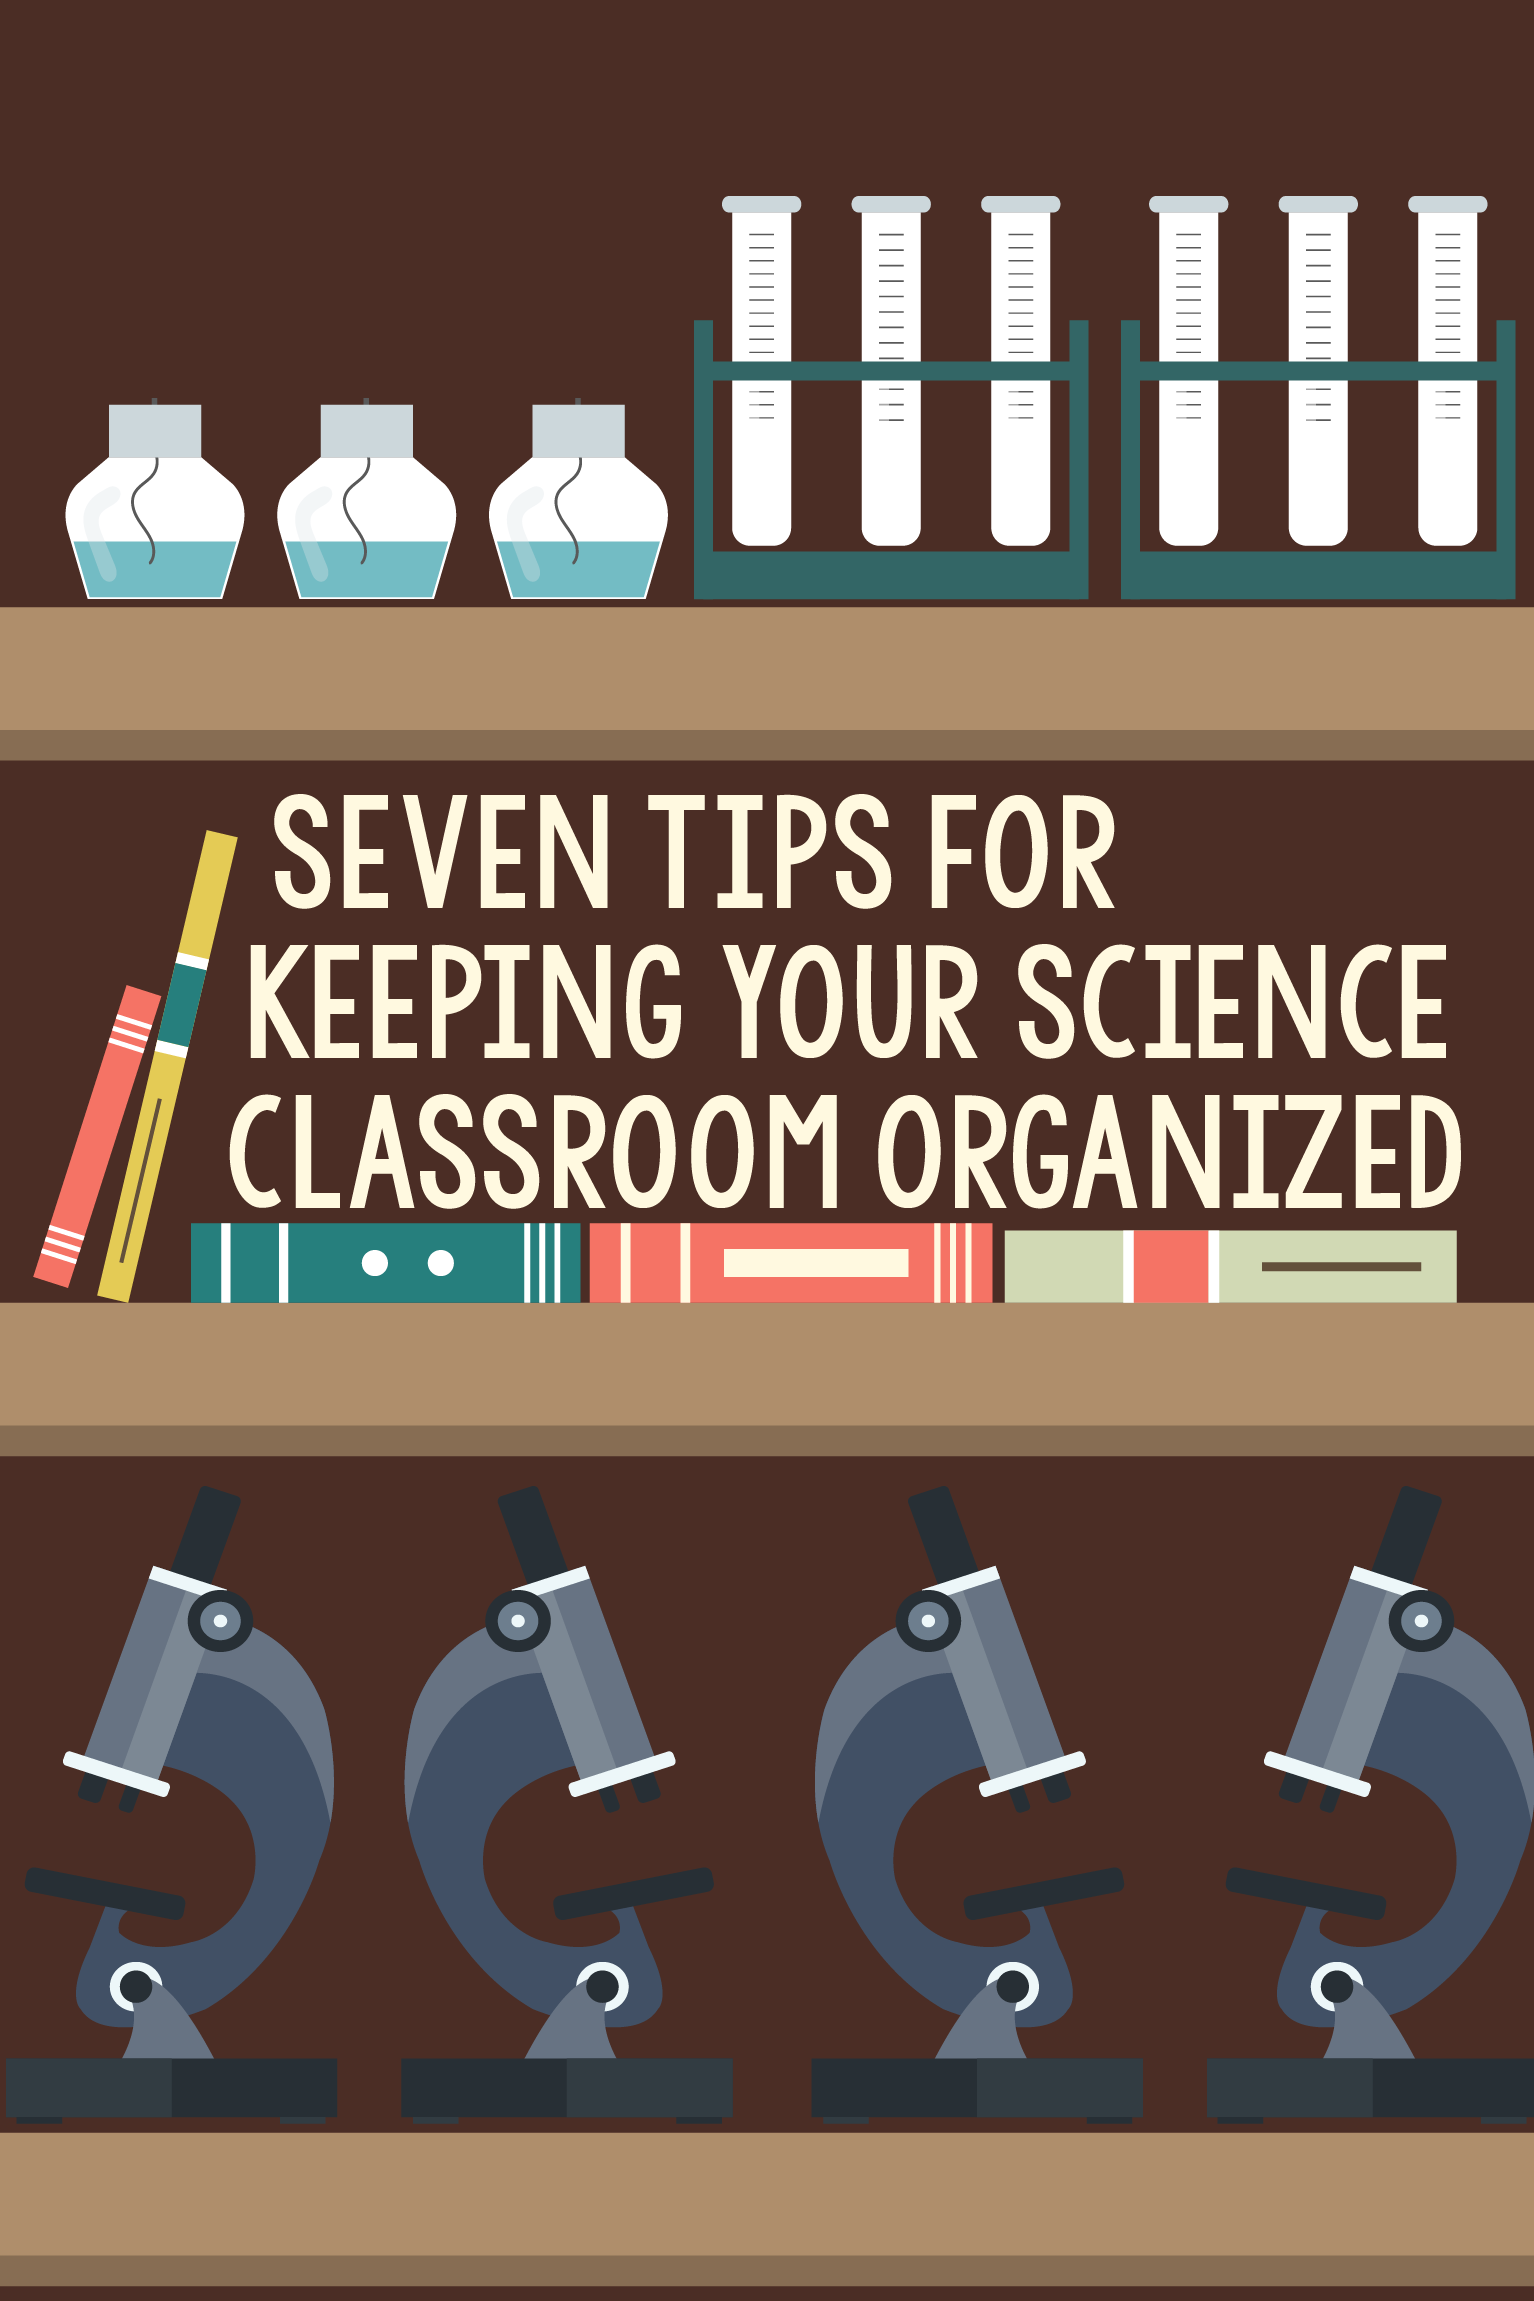 Seven Tips For Keeping Your Science Classroom Organized